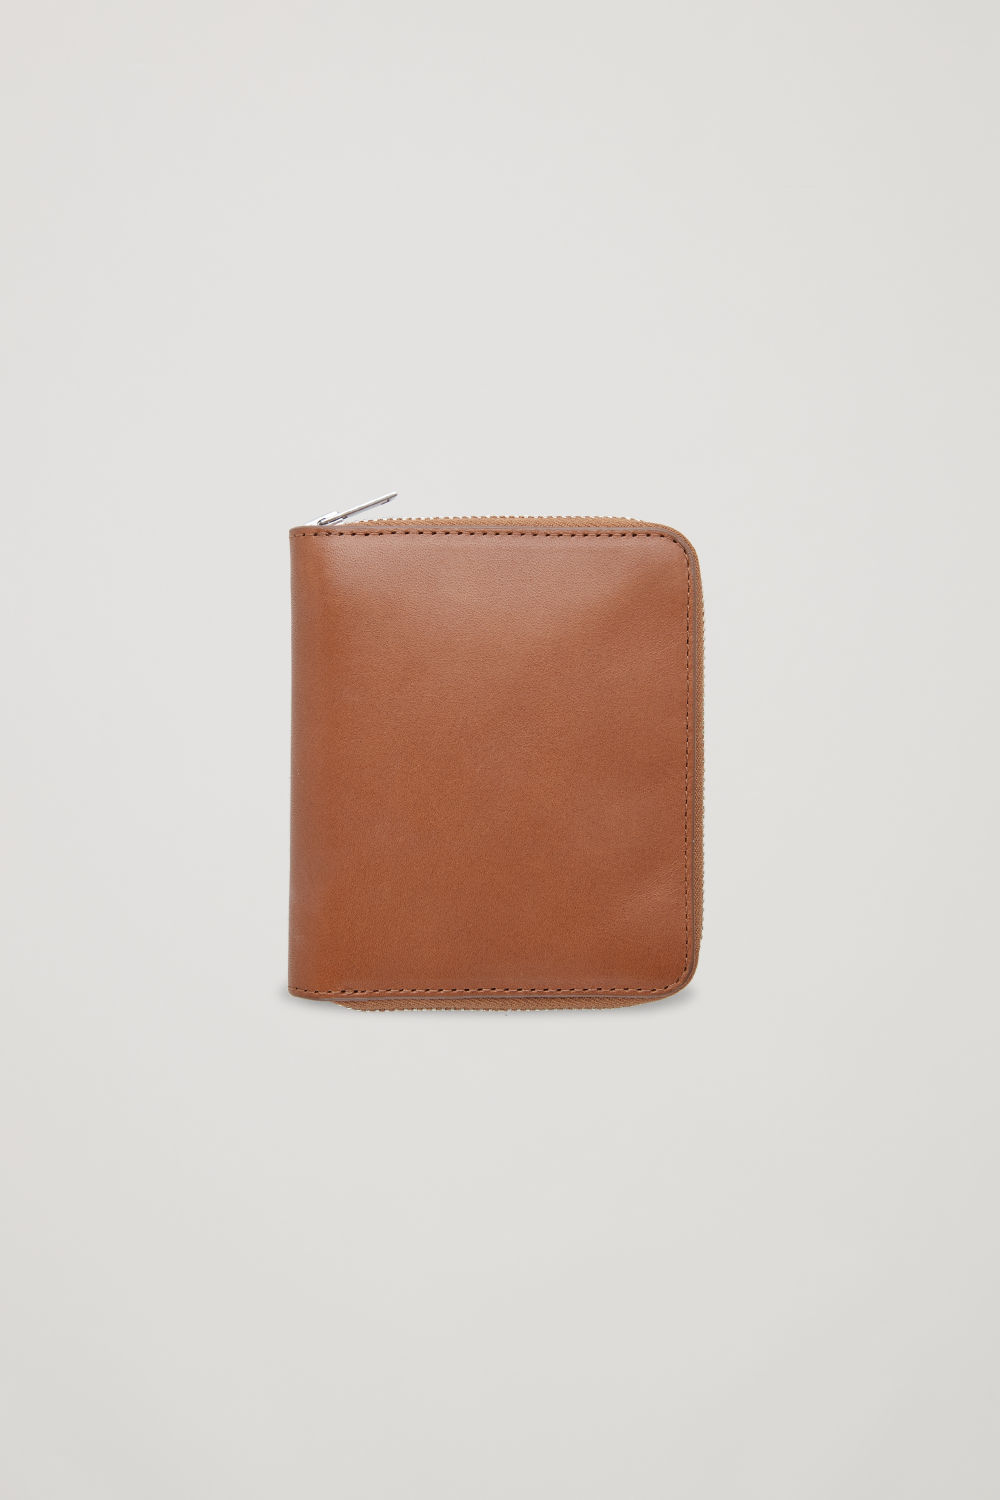 코스 COS LEATHER ZIP WALLET,Tan